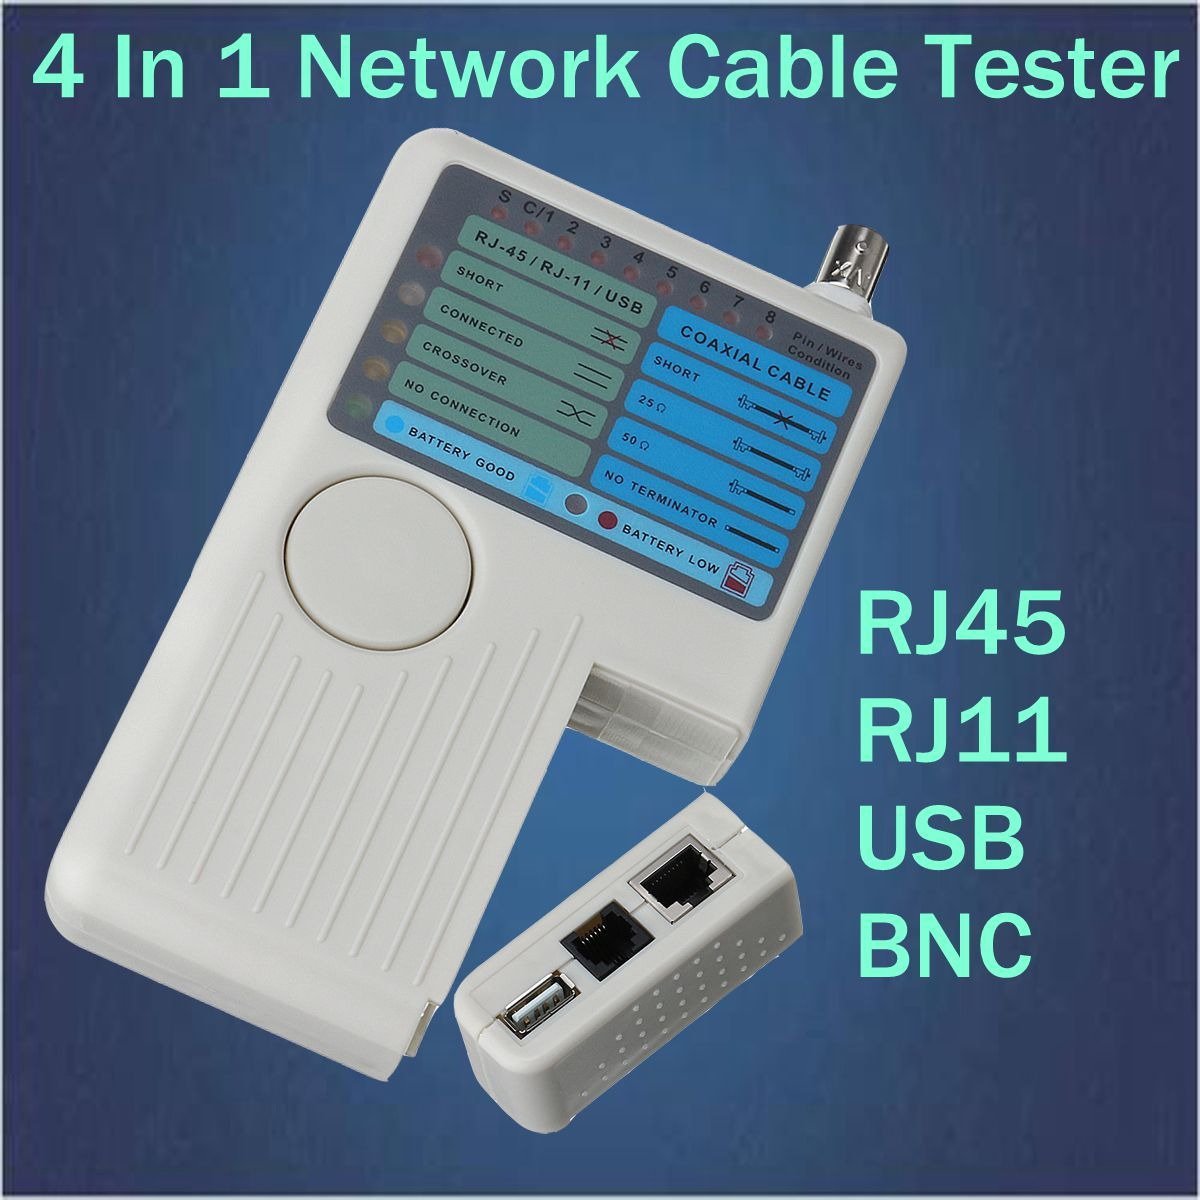 medium resolution of 4 in 1 network cable rj45 rj11 usb bnc lan cable cat5 cat6 wire network cable tester banggood 4 in 1 network cable rj45 rj11 usb bnc lan cable